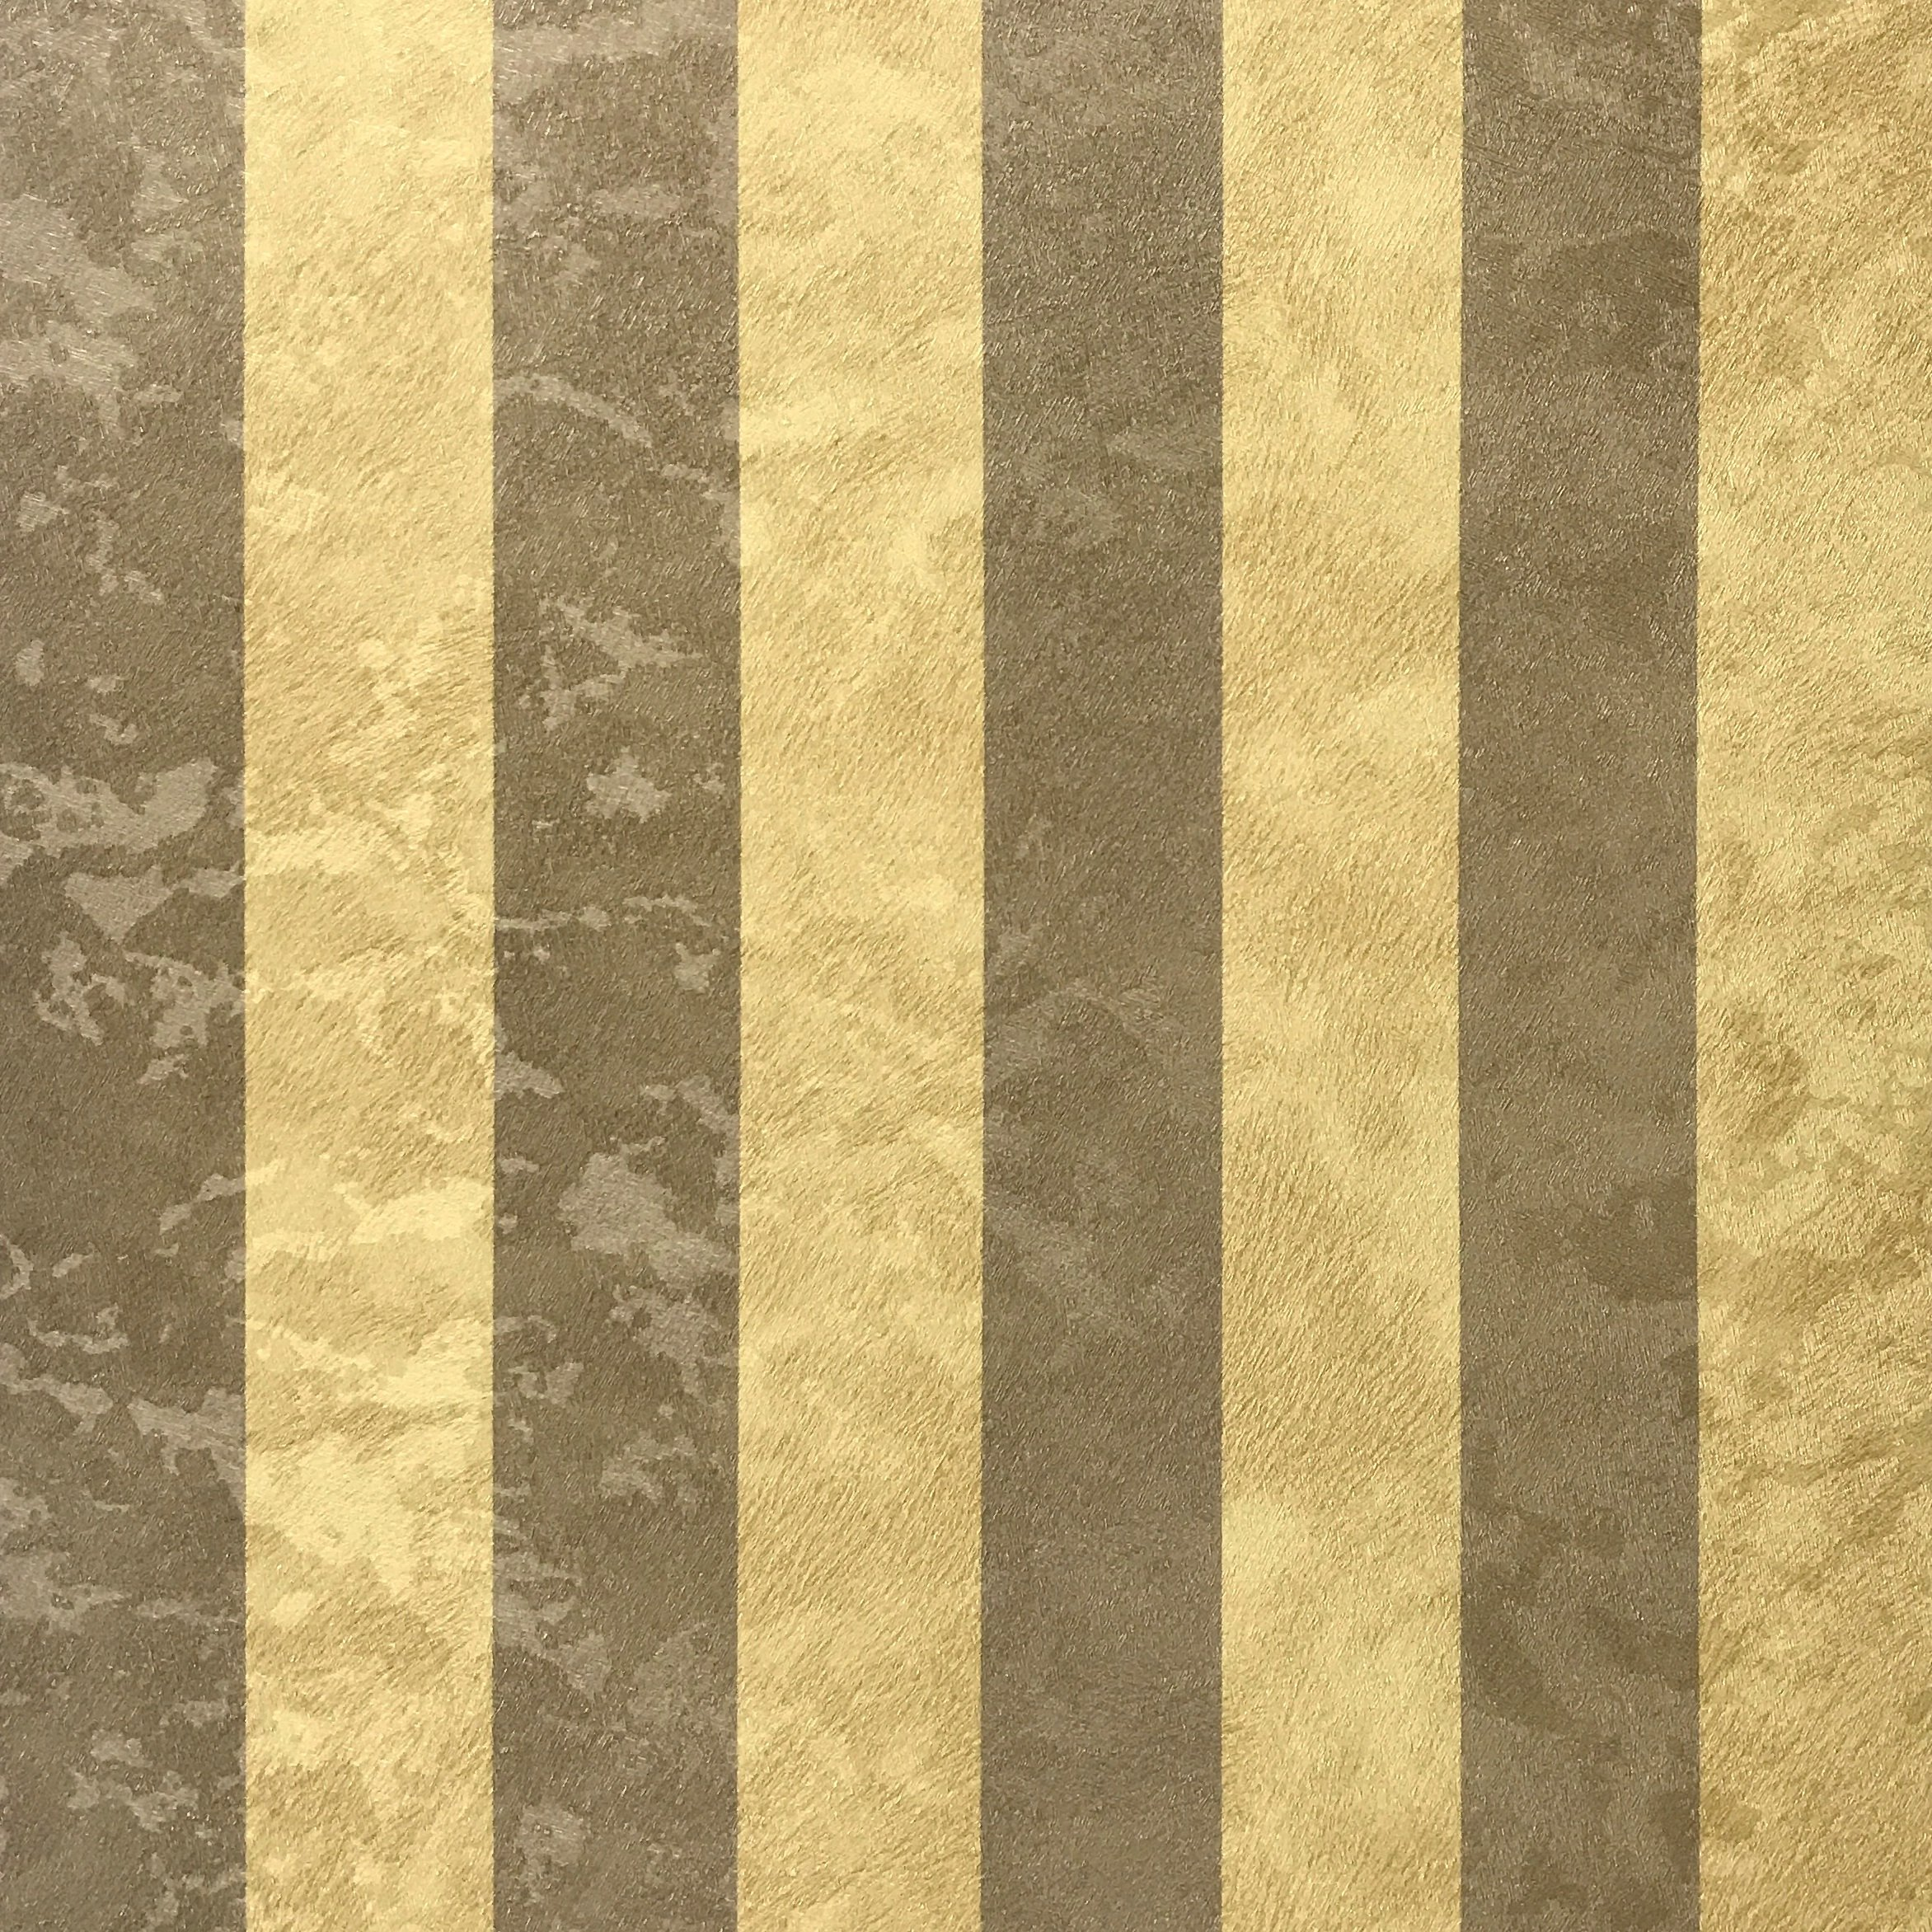 76 sq.ft Made in Italy Portofino textured wallcoverings rolls modern embossed Vinyl Wallpaper gold bronze metallic stripes mustard faux wool fabric striped lines design textures roll 3D wall coverings